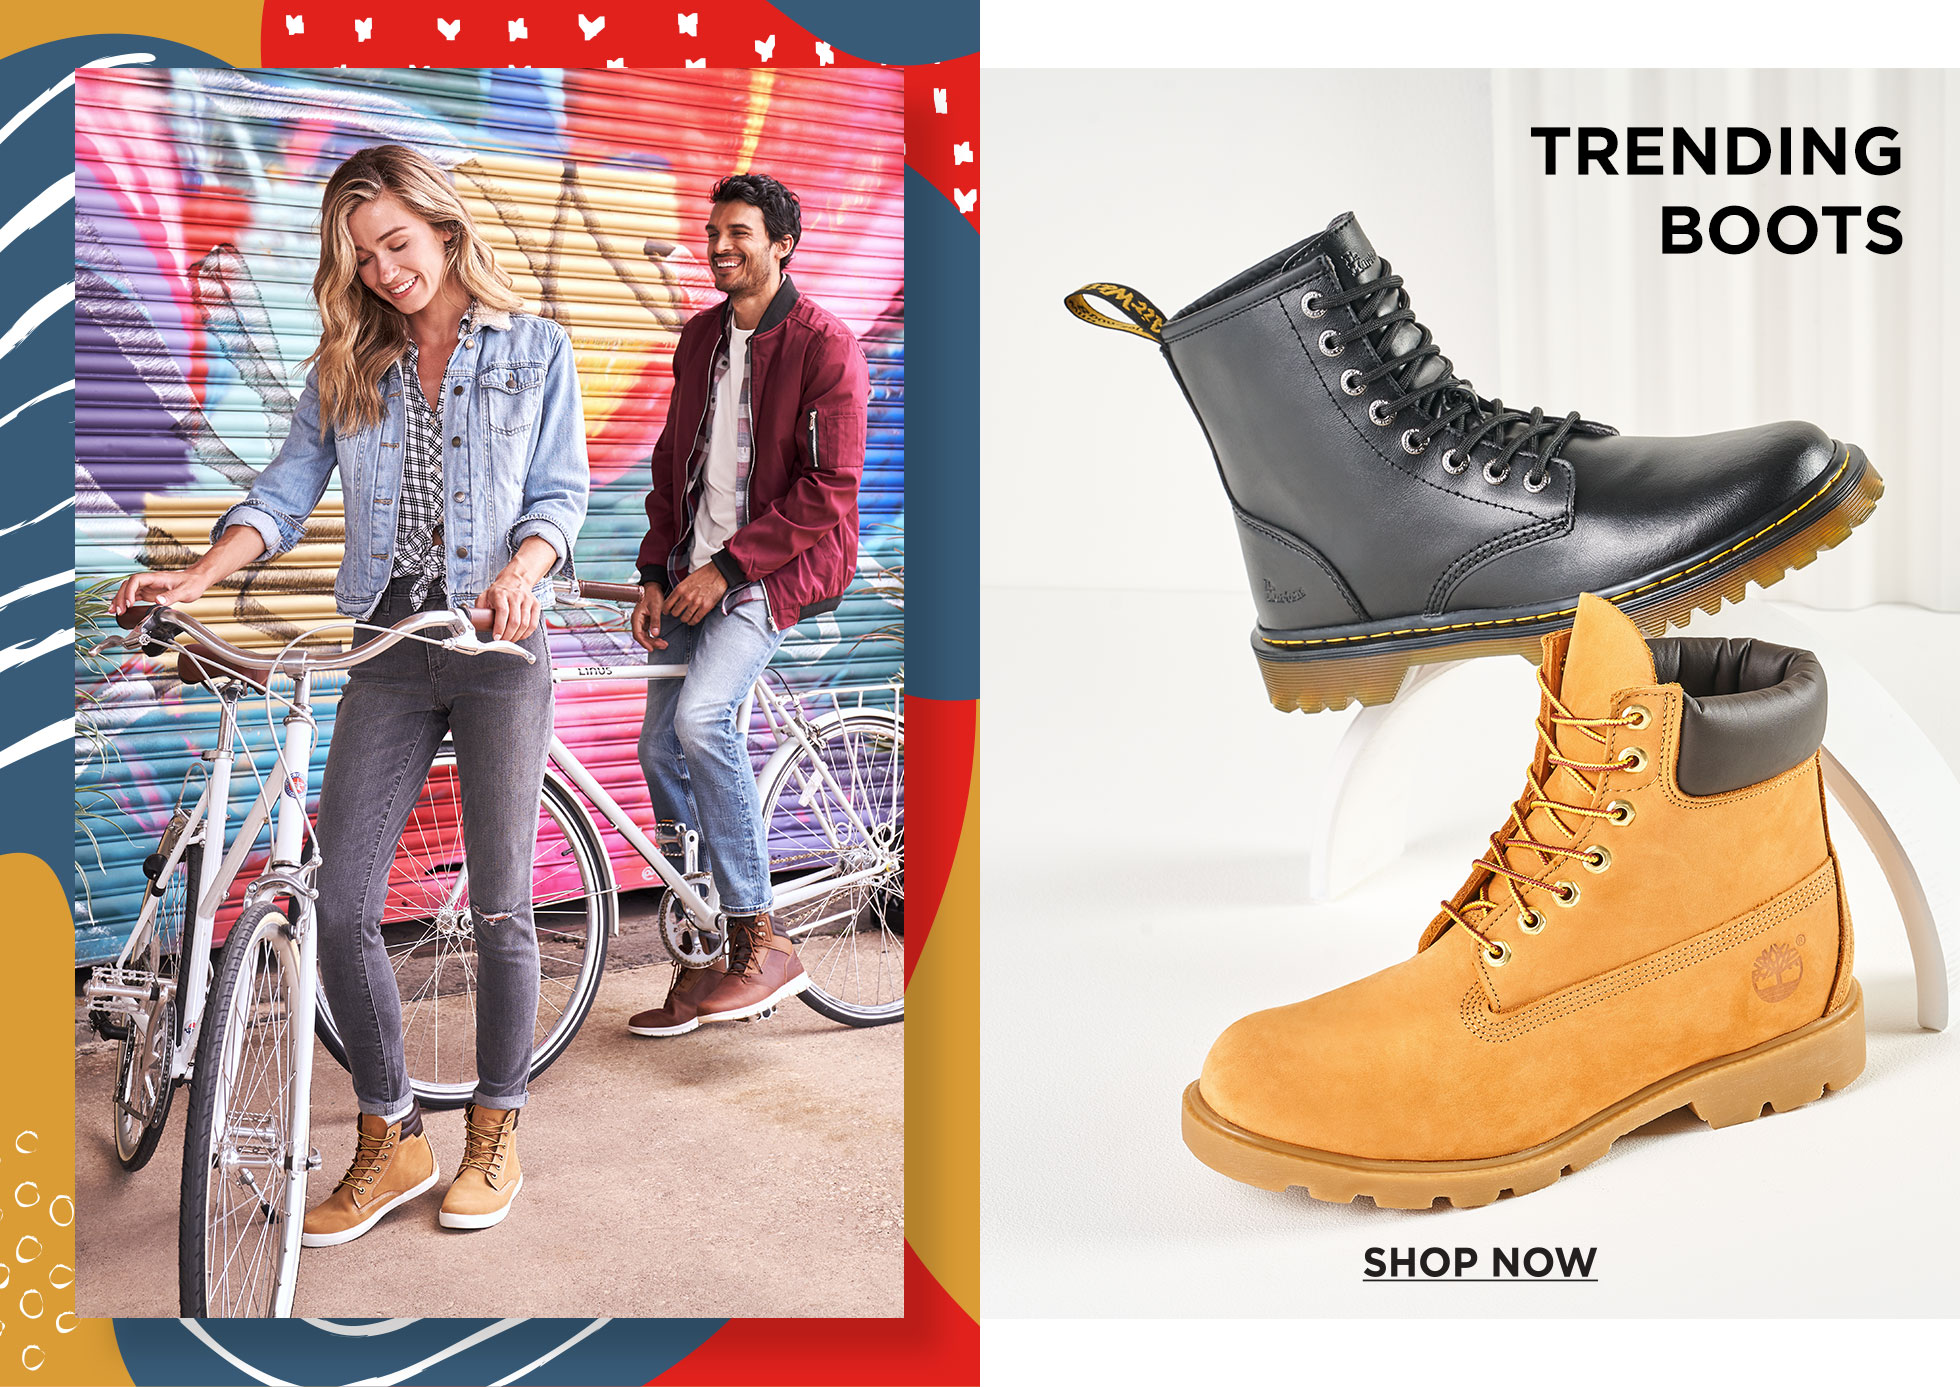 Dr Matens and timberland trending Boots: Shop Now